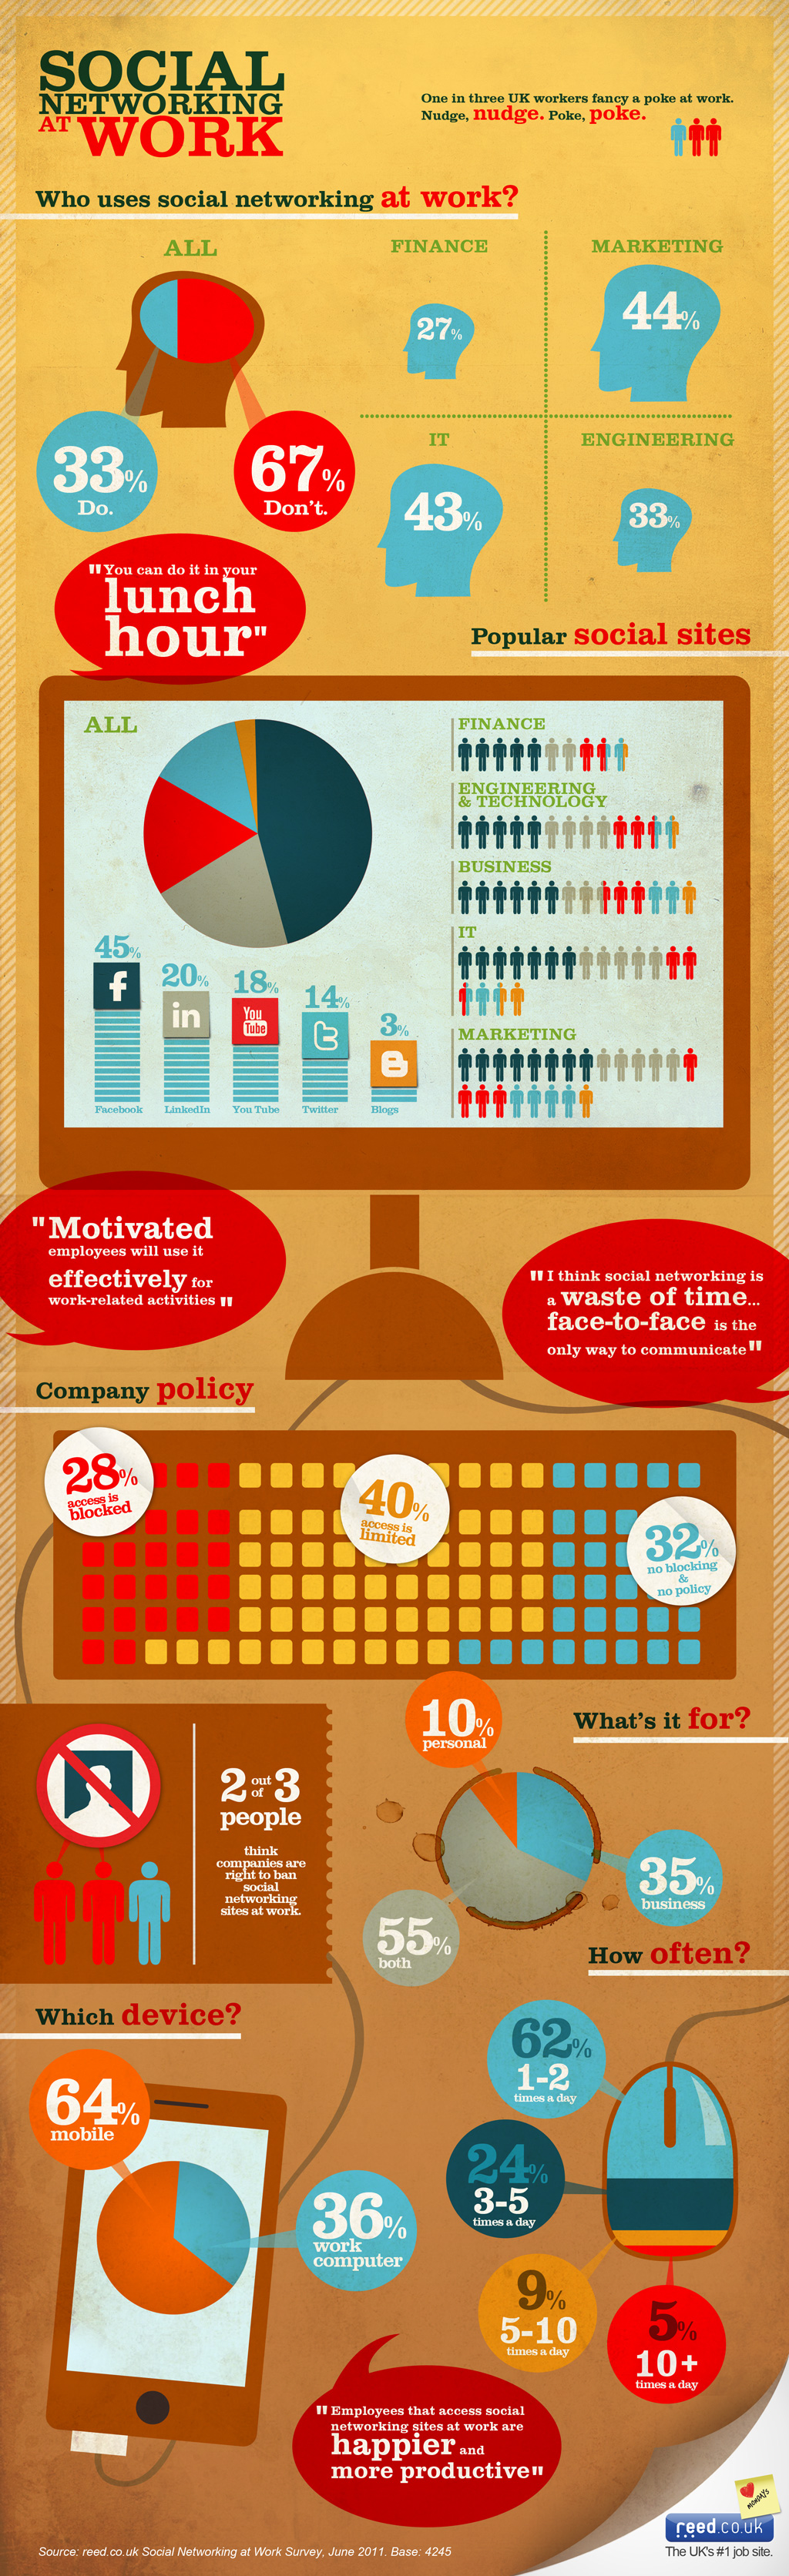 reed.co.uk Social Networking Infographic